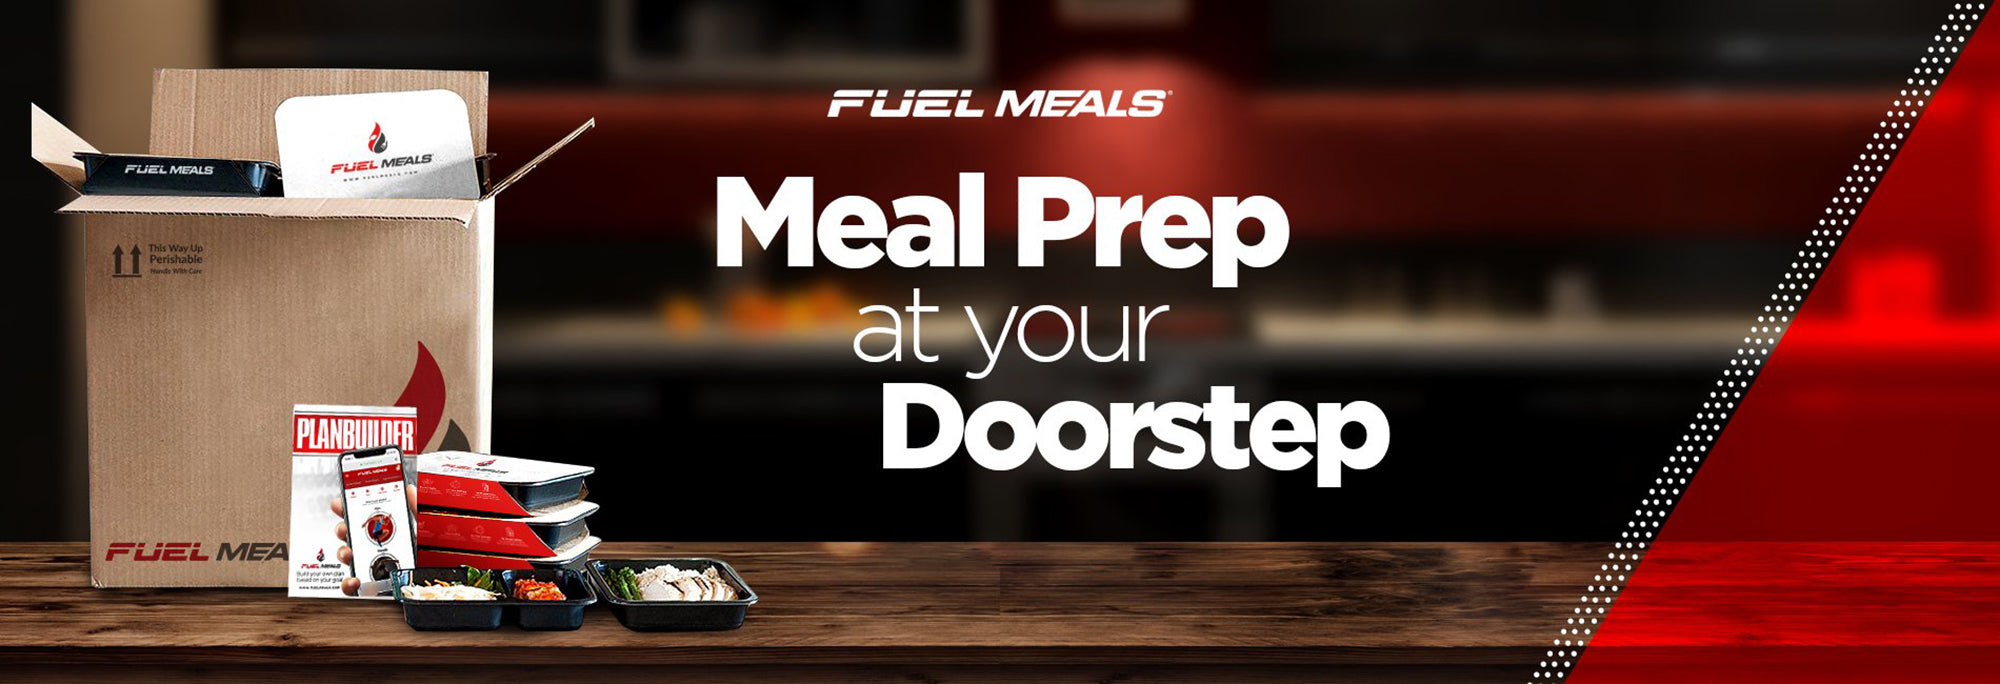 Fuel Meals Meal Prep